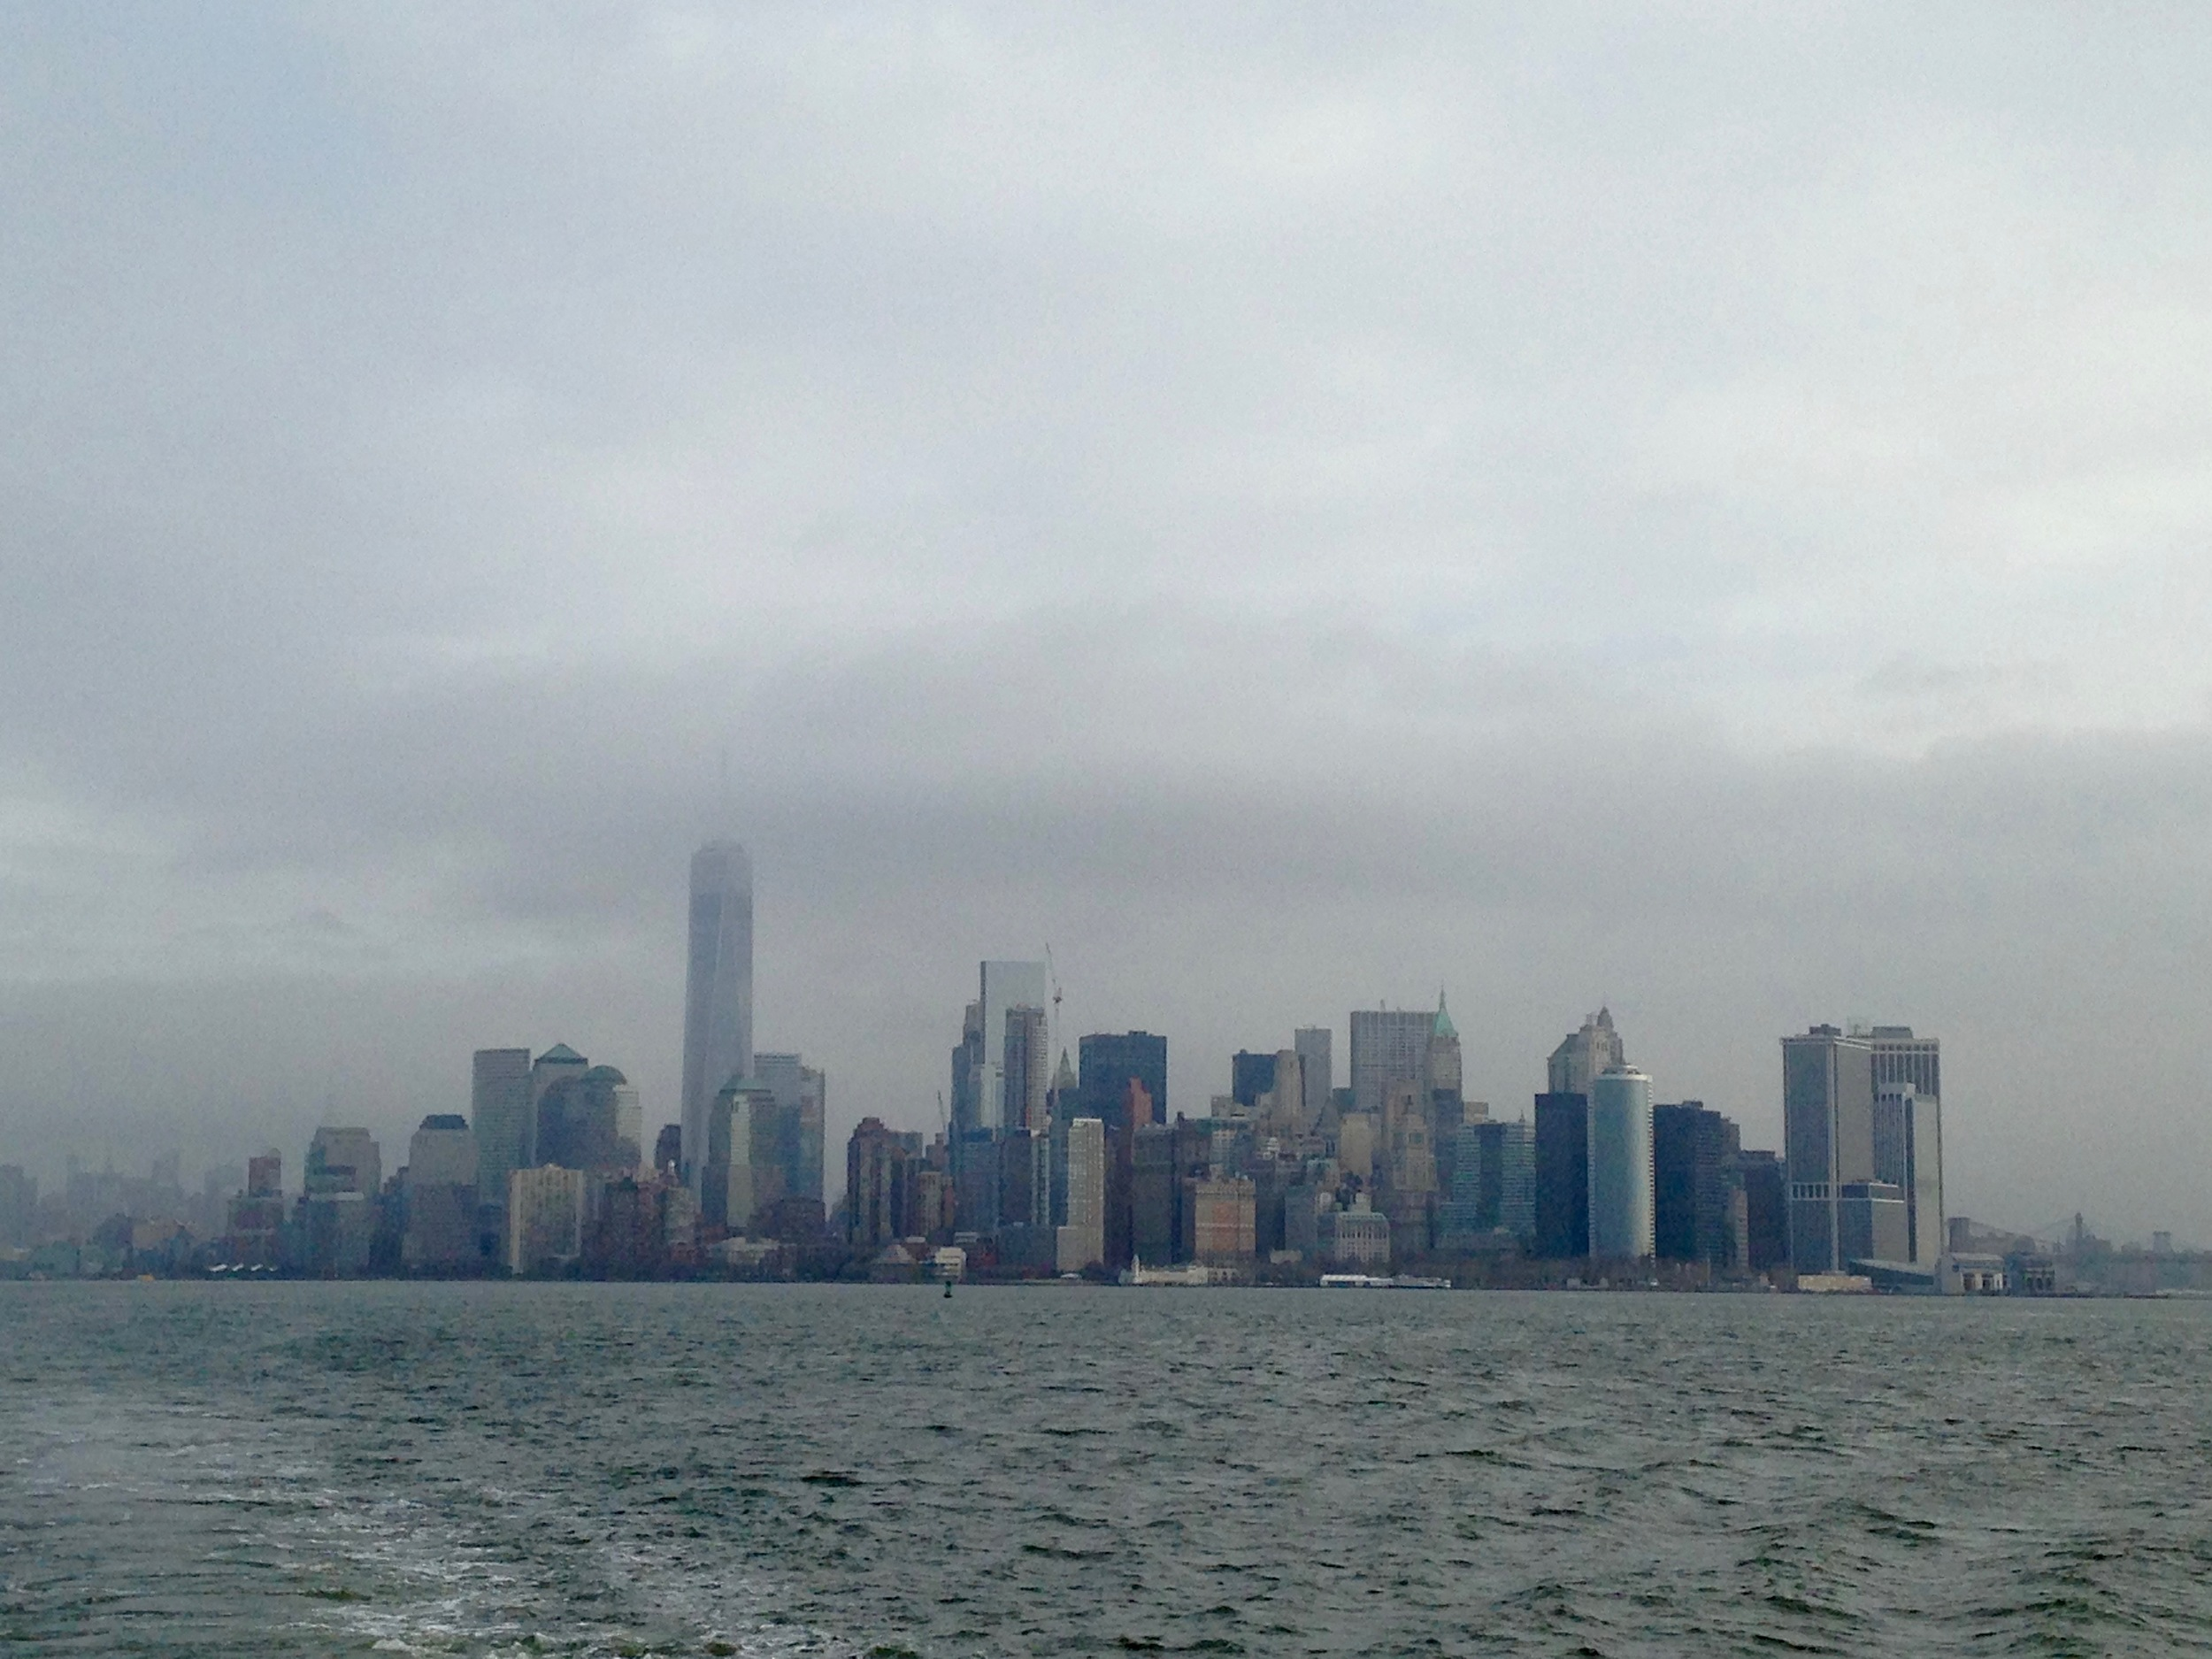 A VIEW OF NYC FROM LIBERTY ISLAND